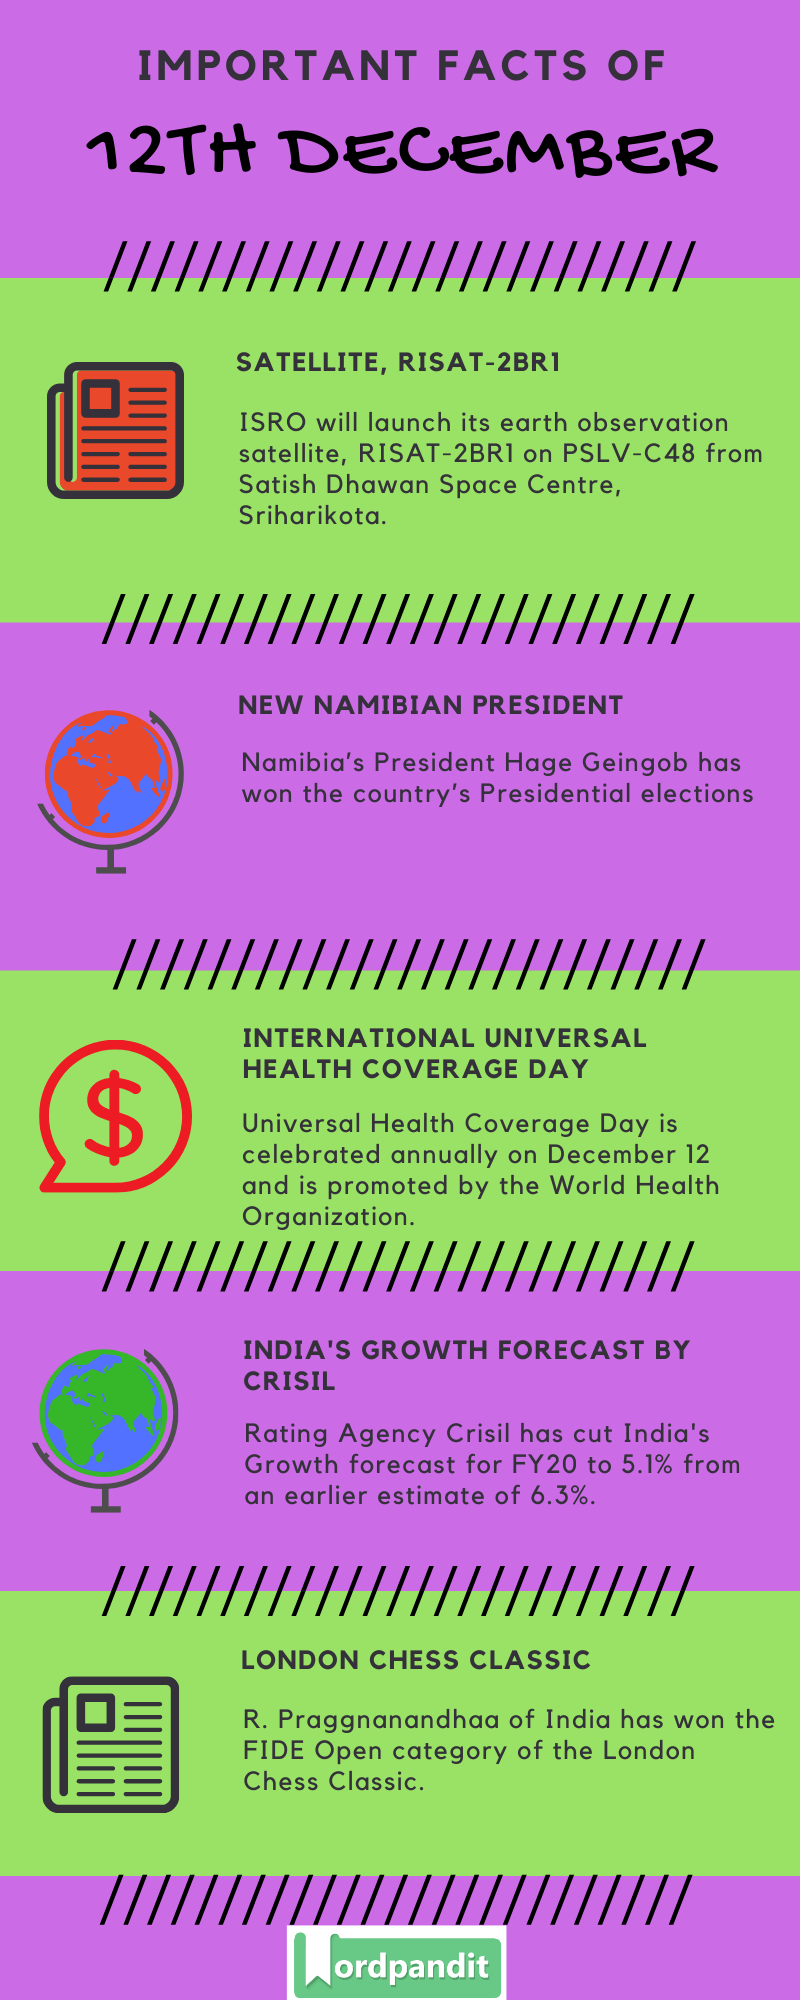 Daily Current Affairs 12 December 2019 Current Affairs Quiz 12 December 2019 Current Affairs Infographic